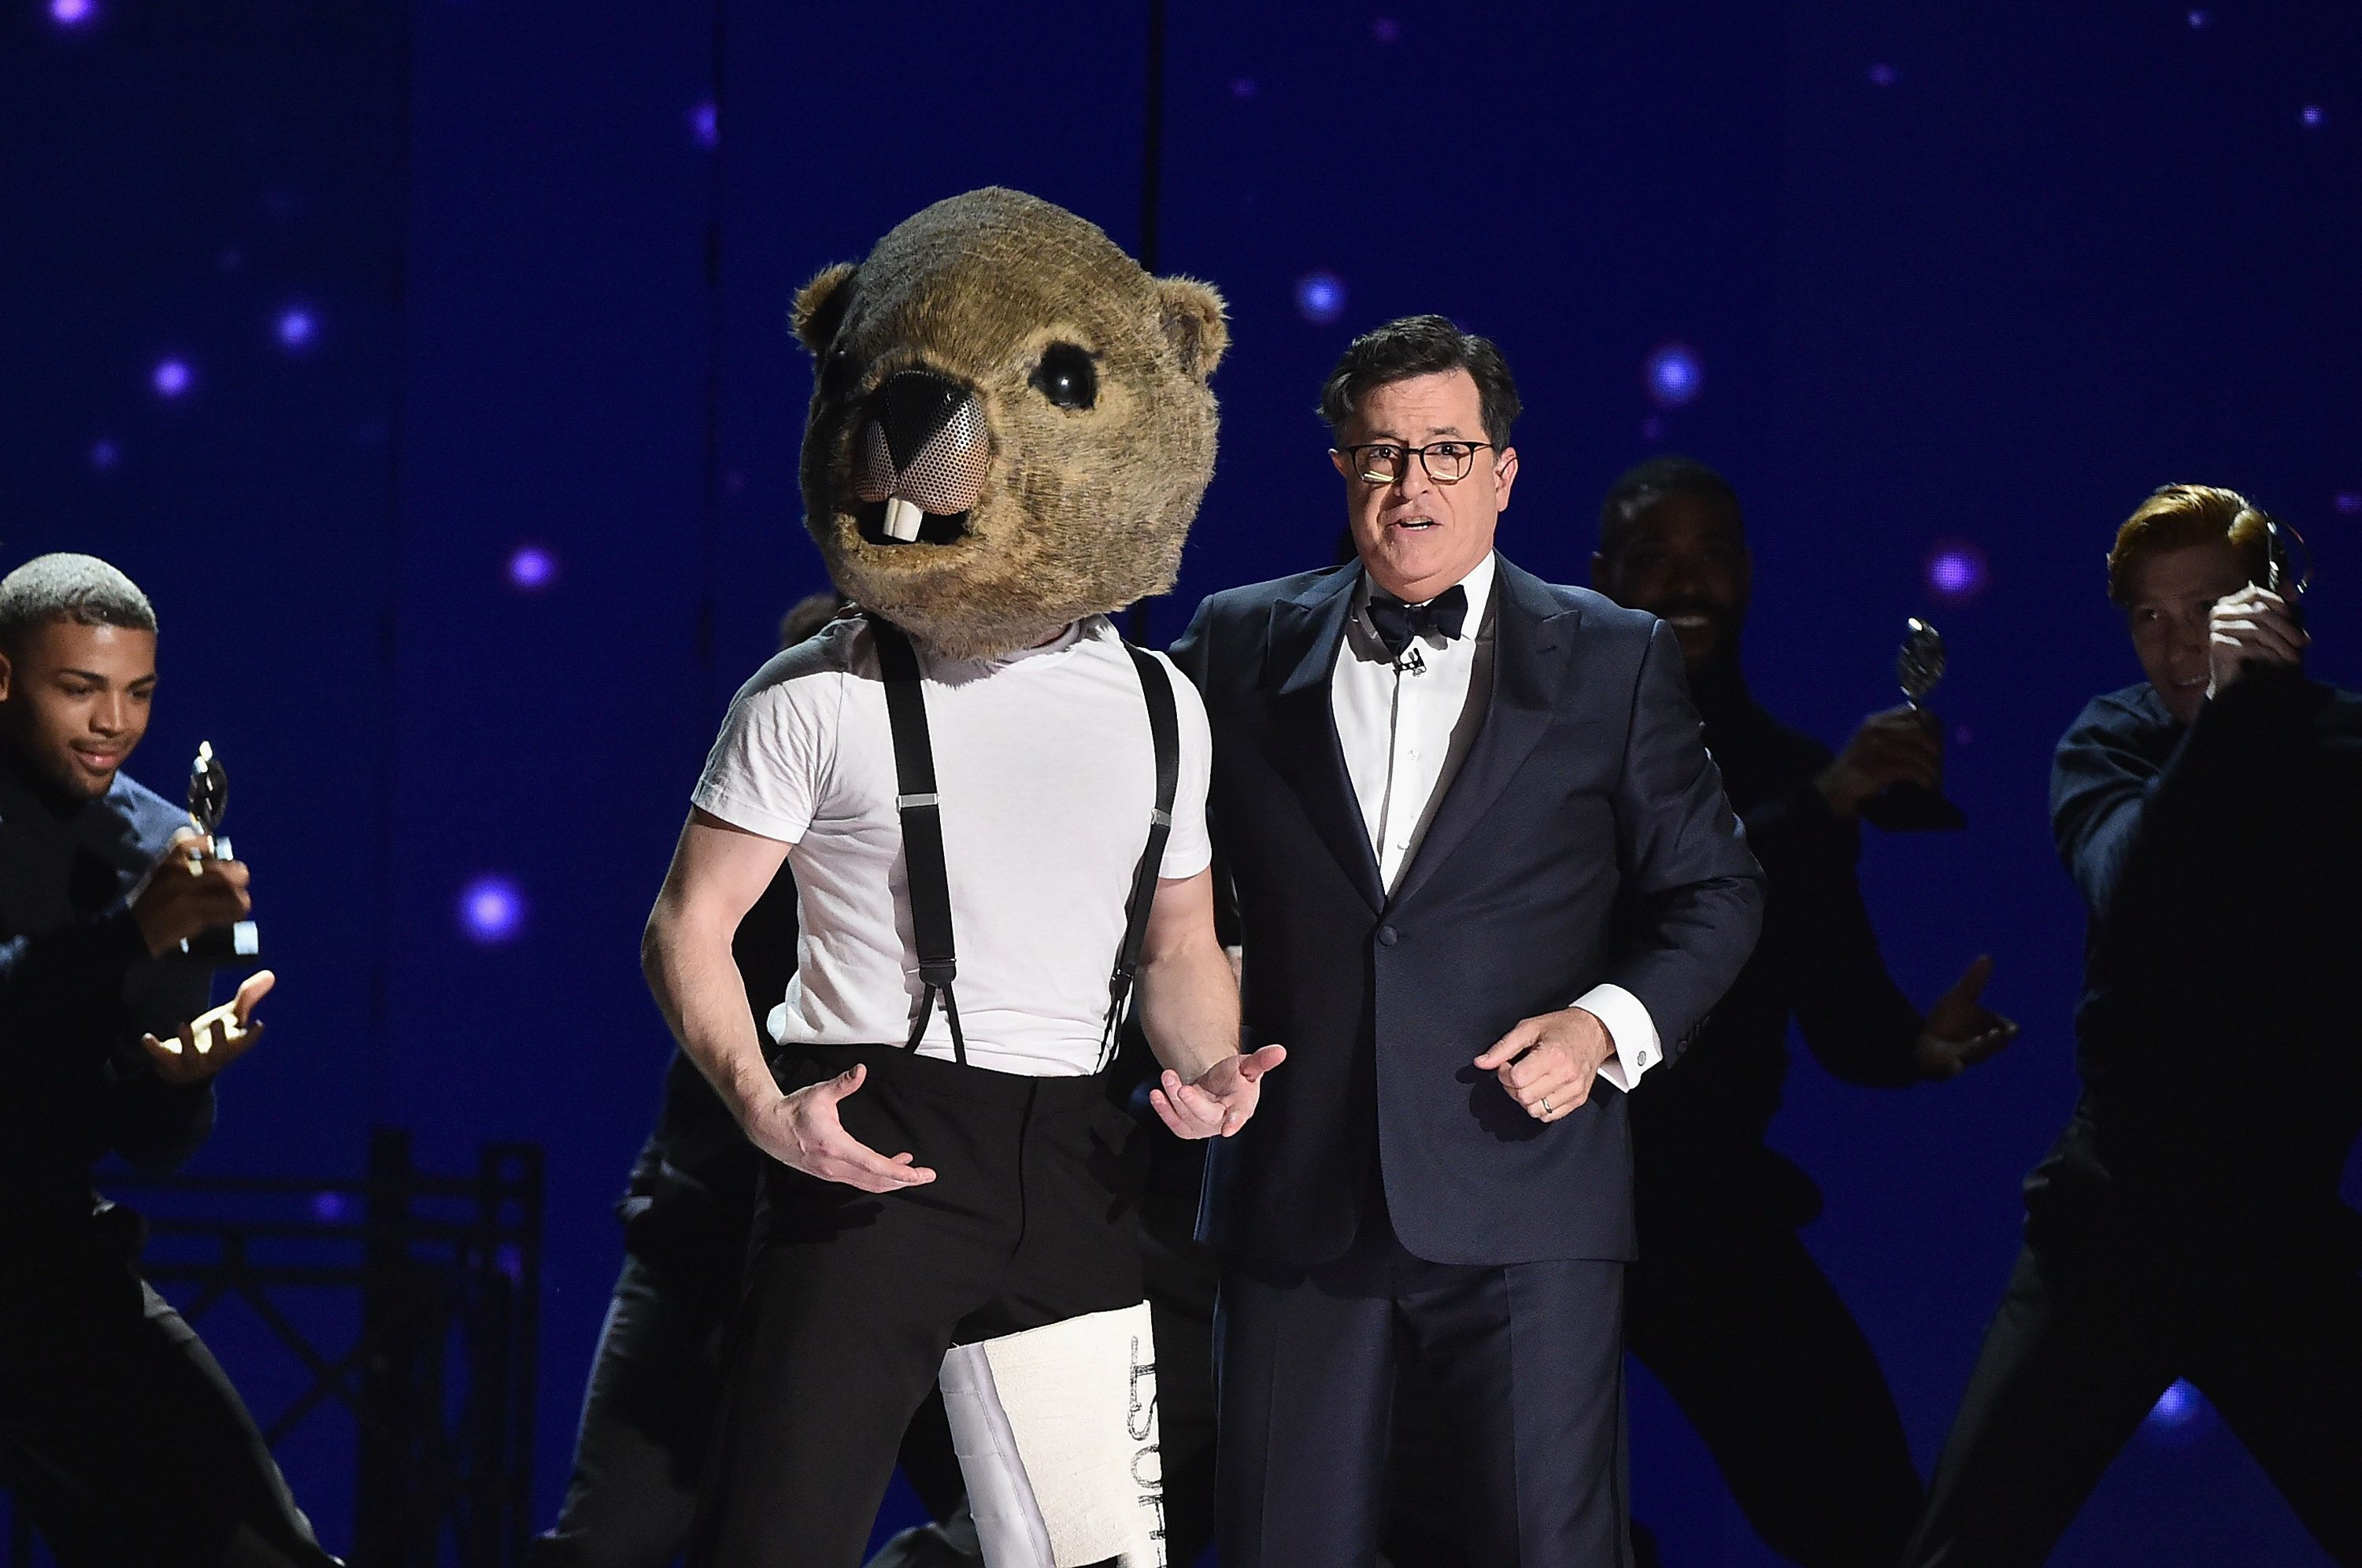 NEW YORK, NY - JUNE 11:  Stephen Colbert performs onstage during the 2017 Tony Awards at Radio City Music Hall on June 11, 2017 in New York City.  (Photo by Theo Wargo/Getty Images for Tony Awards Productions)